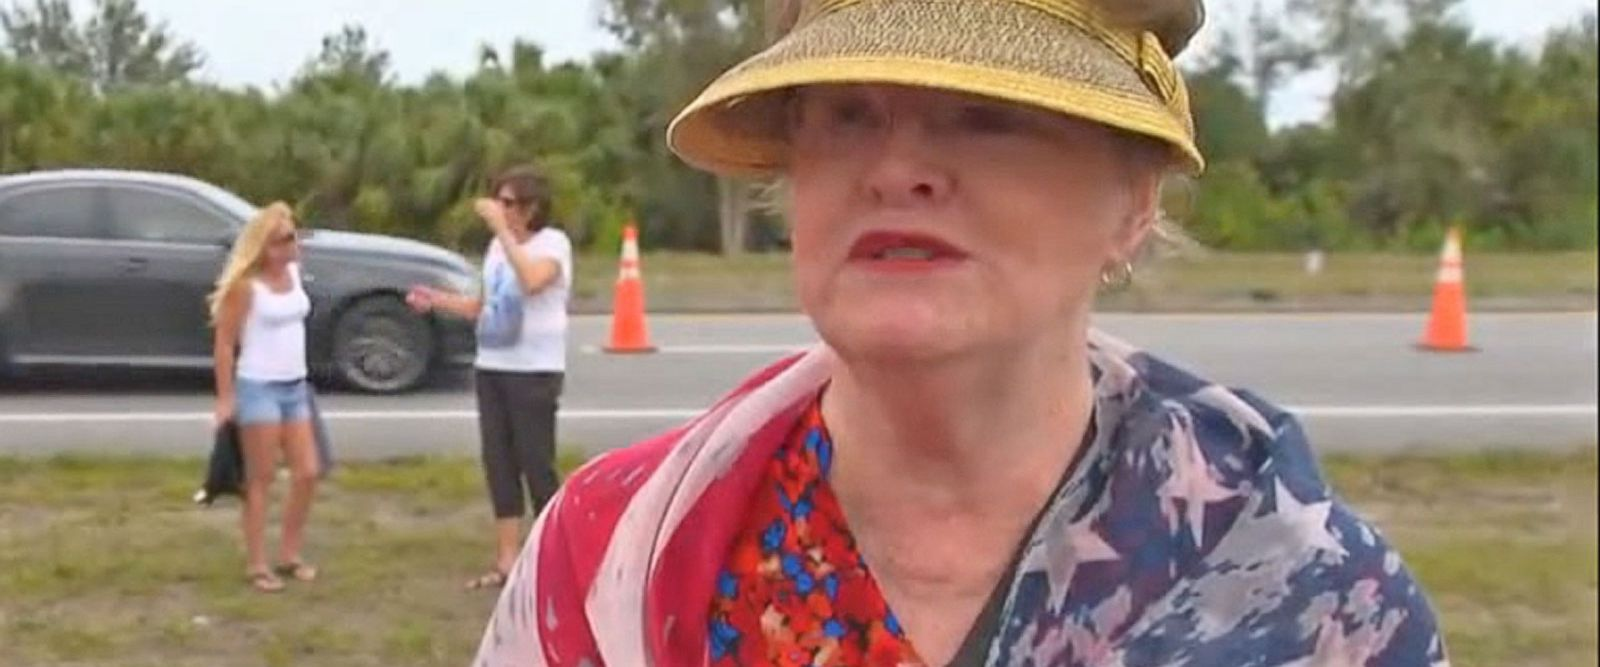 VIDEO: Trump supporter says president has brought 'hope' and 'respect' back to US